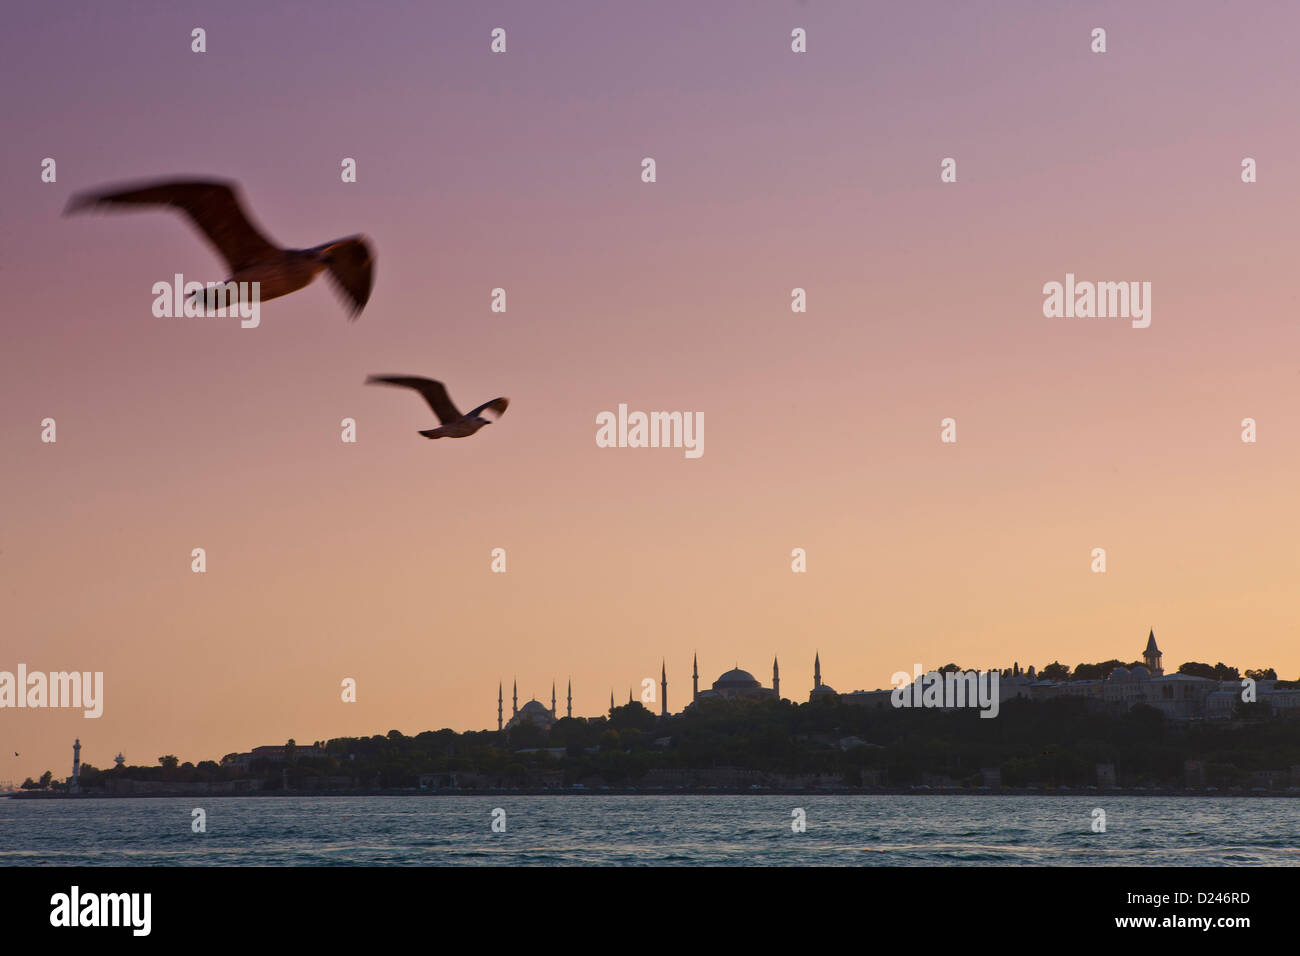 Turkey, Seagulls flying in sky, Blue Mosque in background - Stock Image